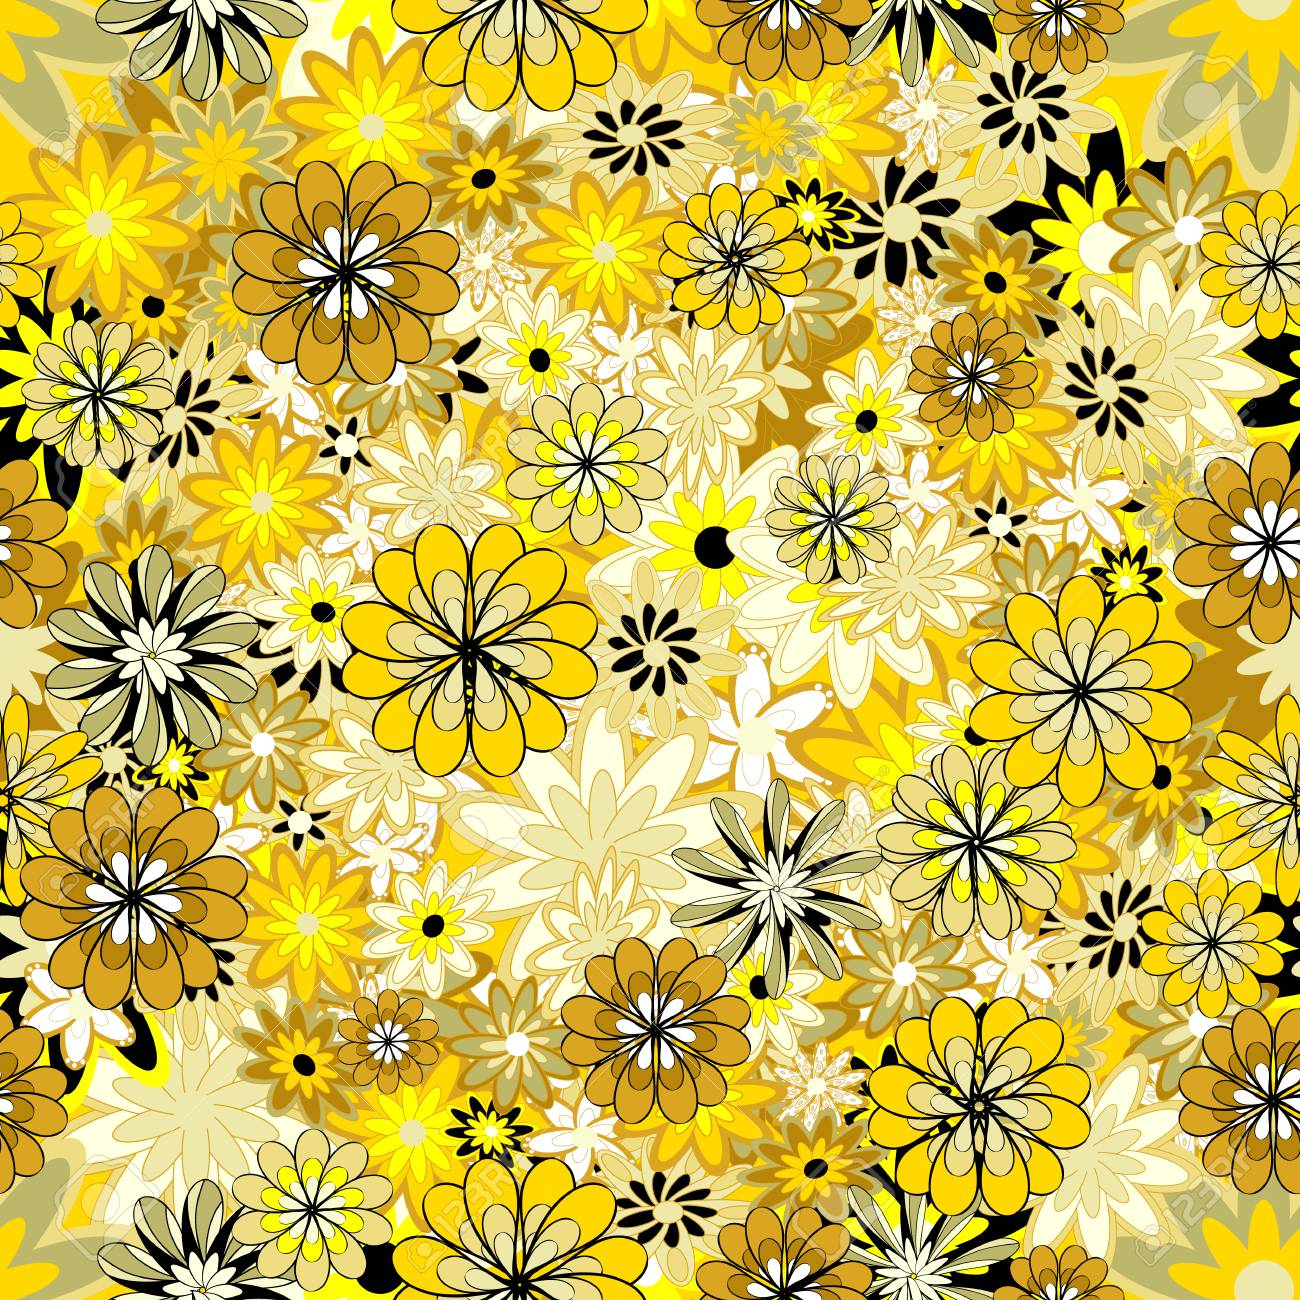 Seamless Floral Pattern Light Yellow Flowers On A Yellow Background